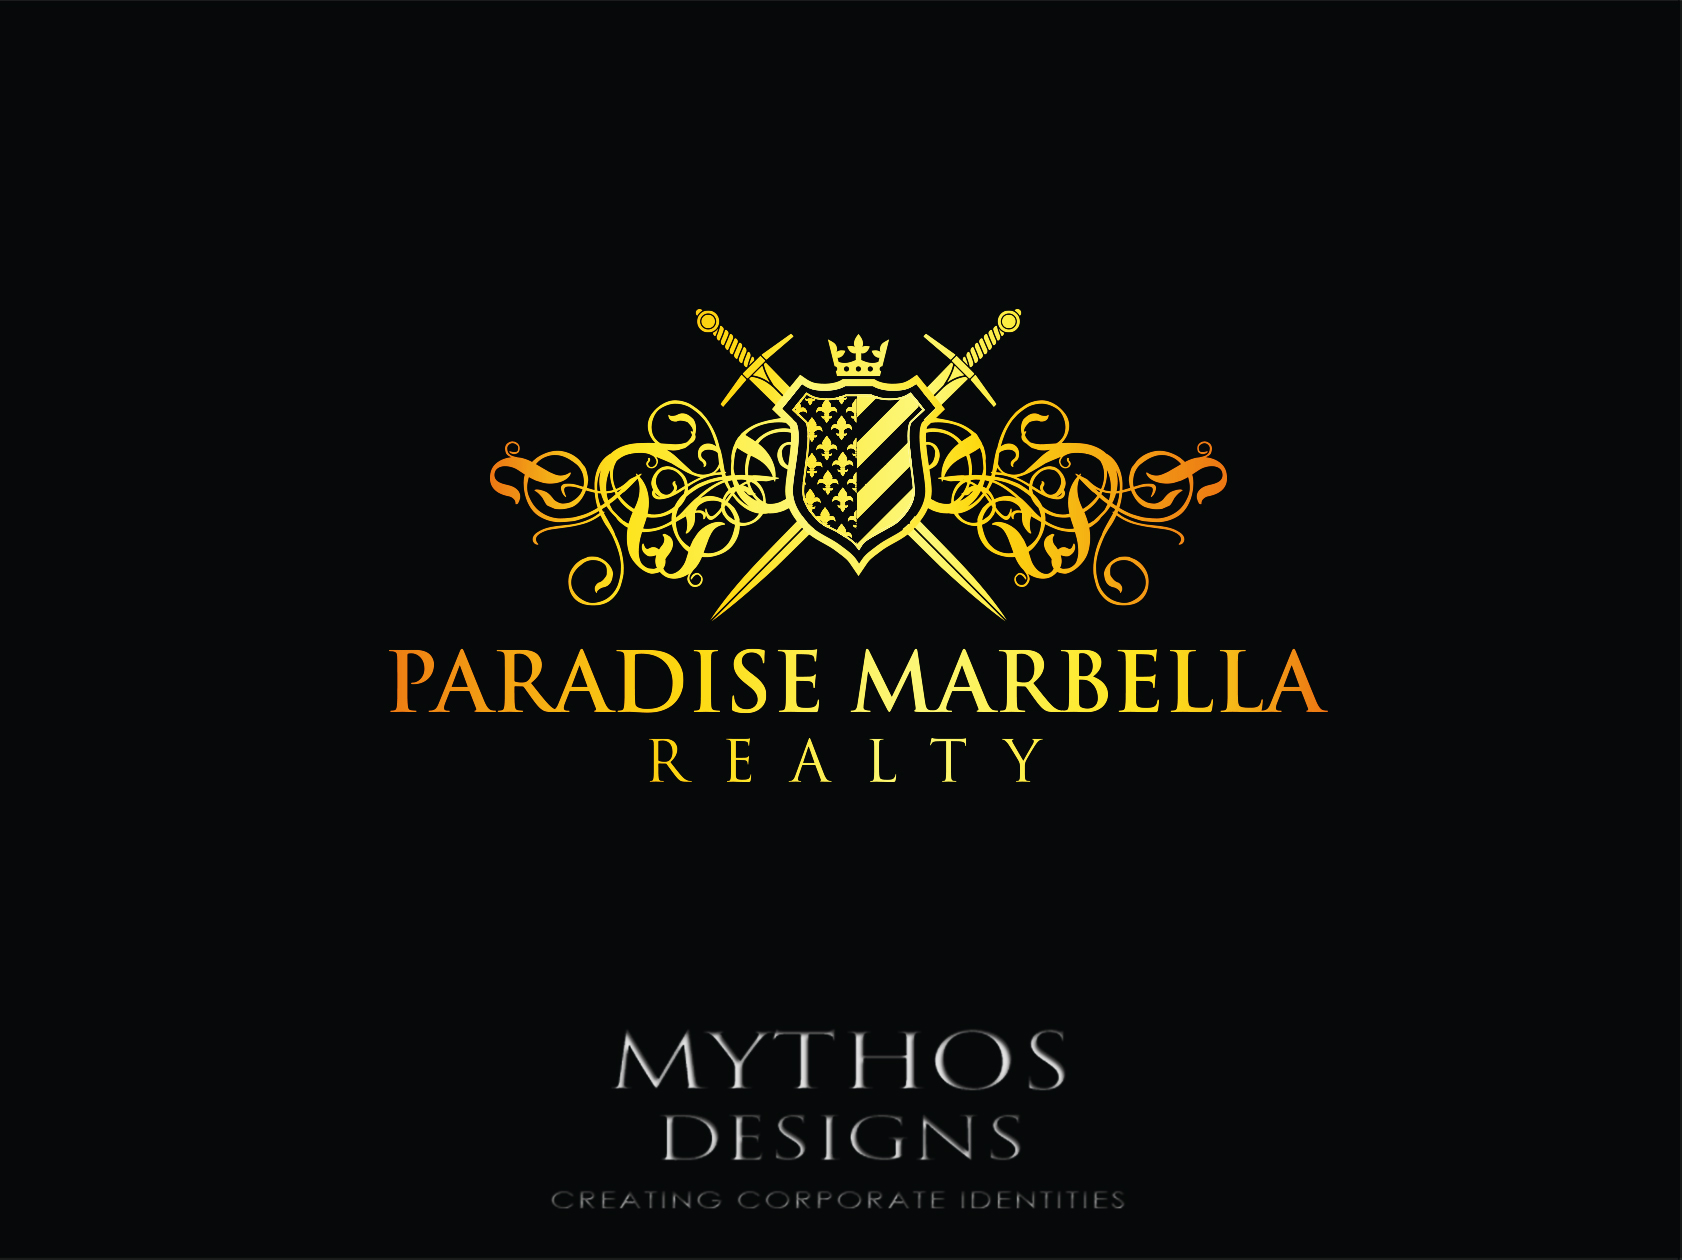 Logo Design by Mythos Designs - Entry No. 111 in the Logo Design Contest Captivating Logo Design for Paradise Marbella Realty.